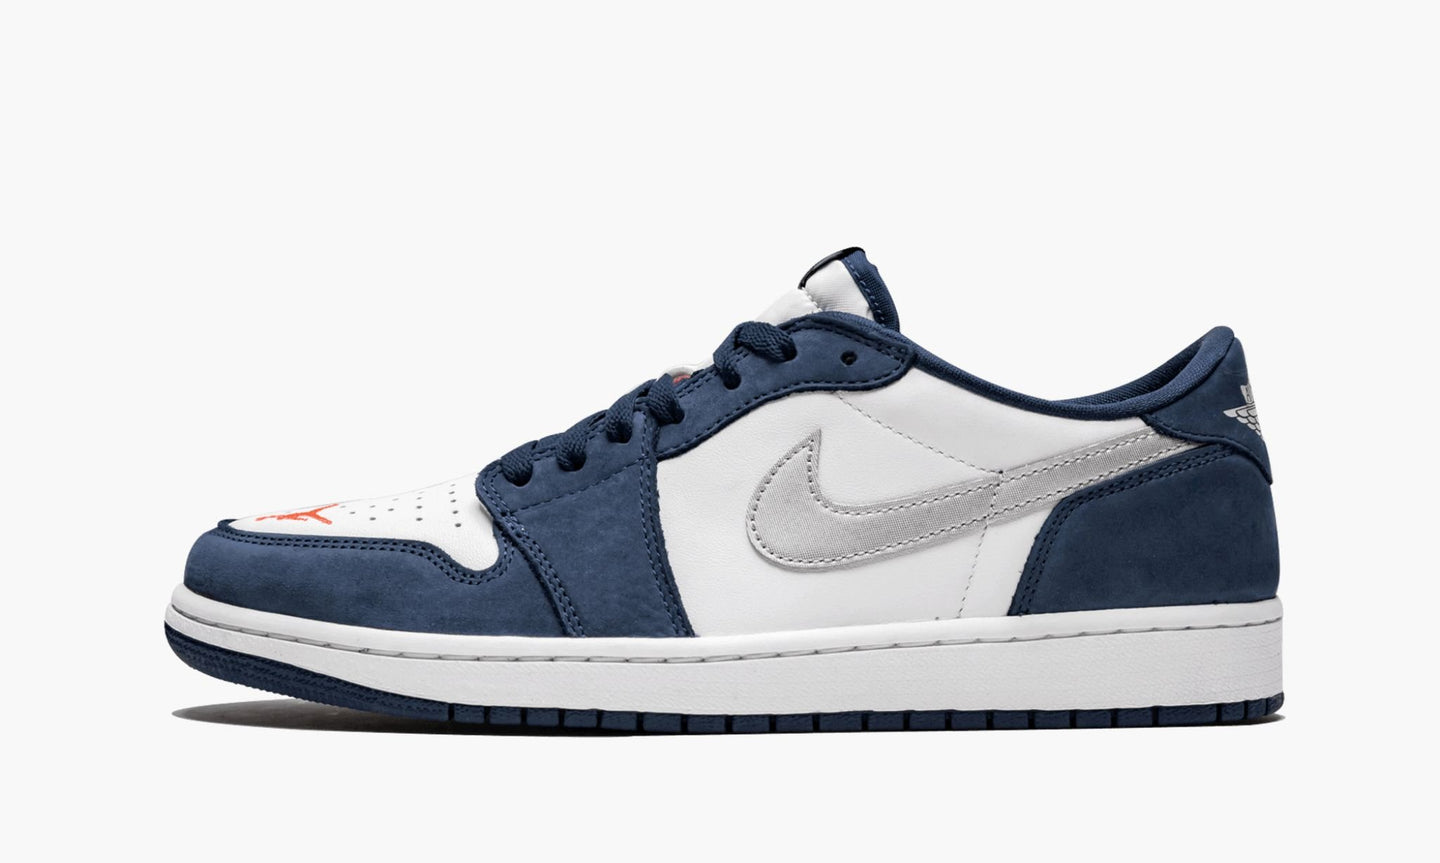 Jordan Jordan 1 Low x Nike SB Eric Koston 'Midnight Navy' - Street Peek